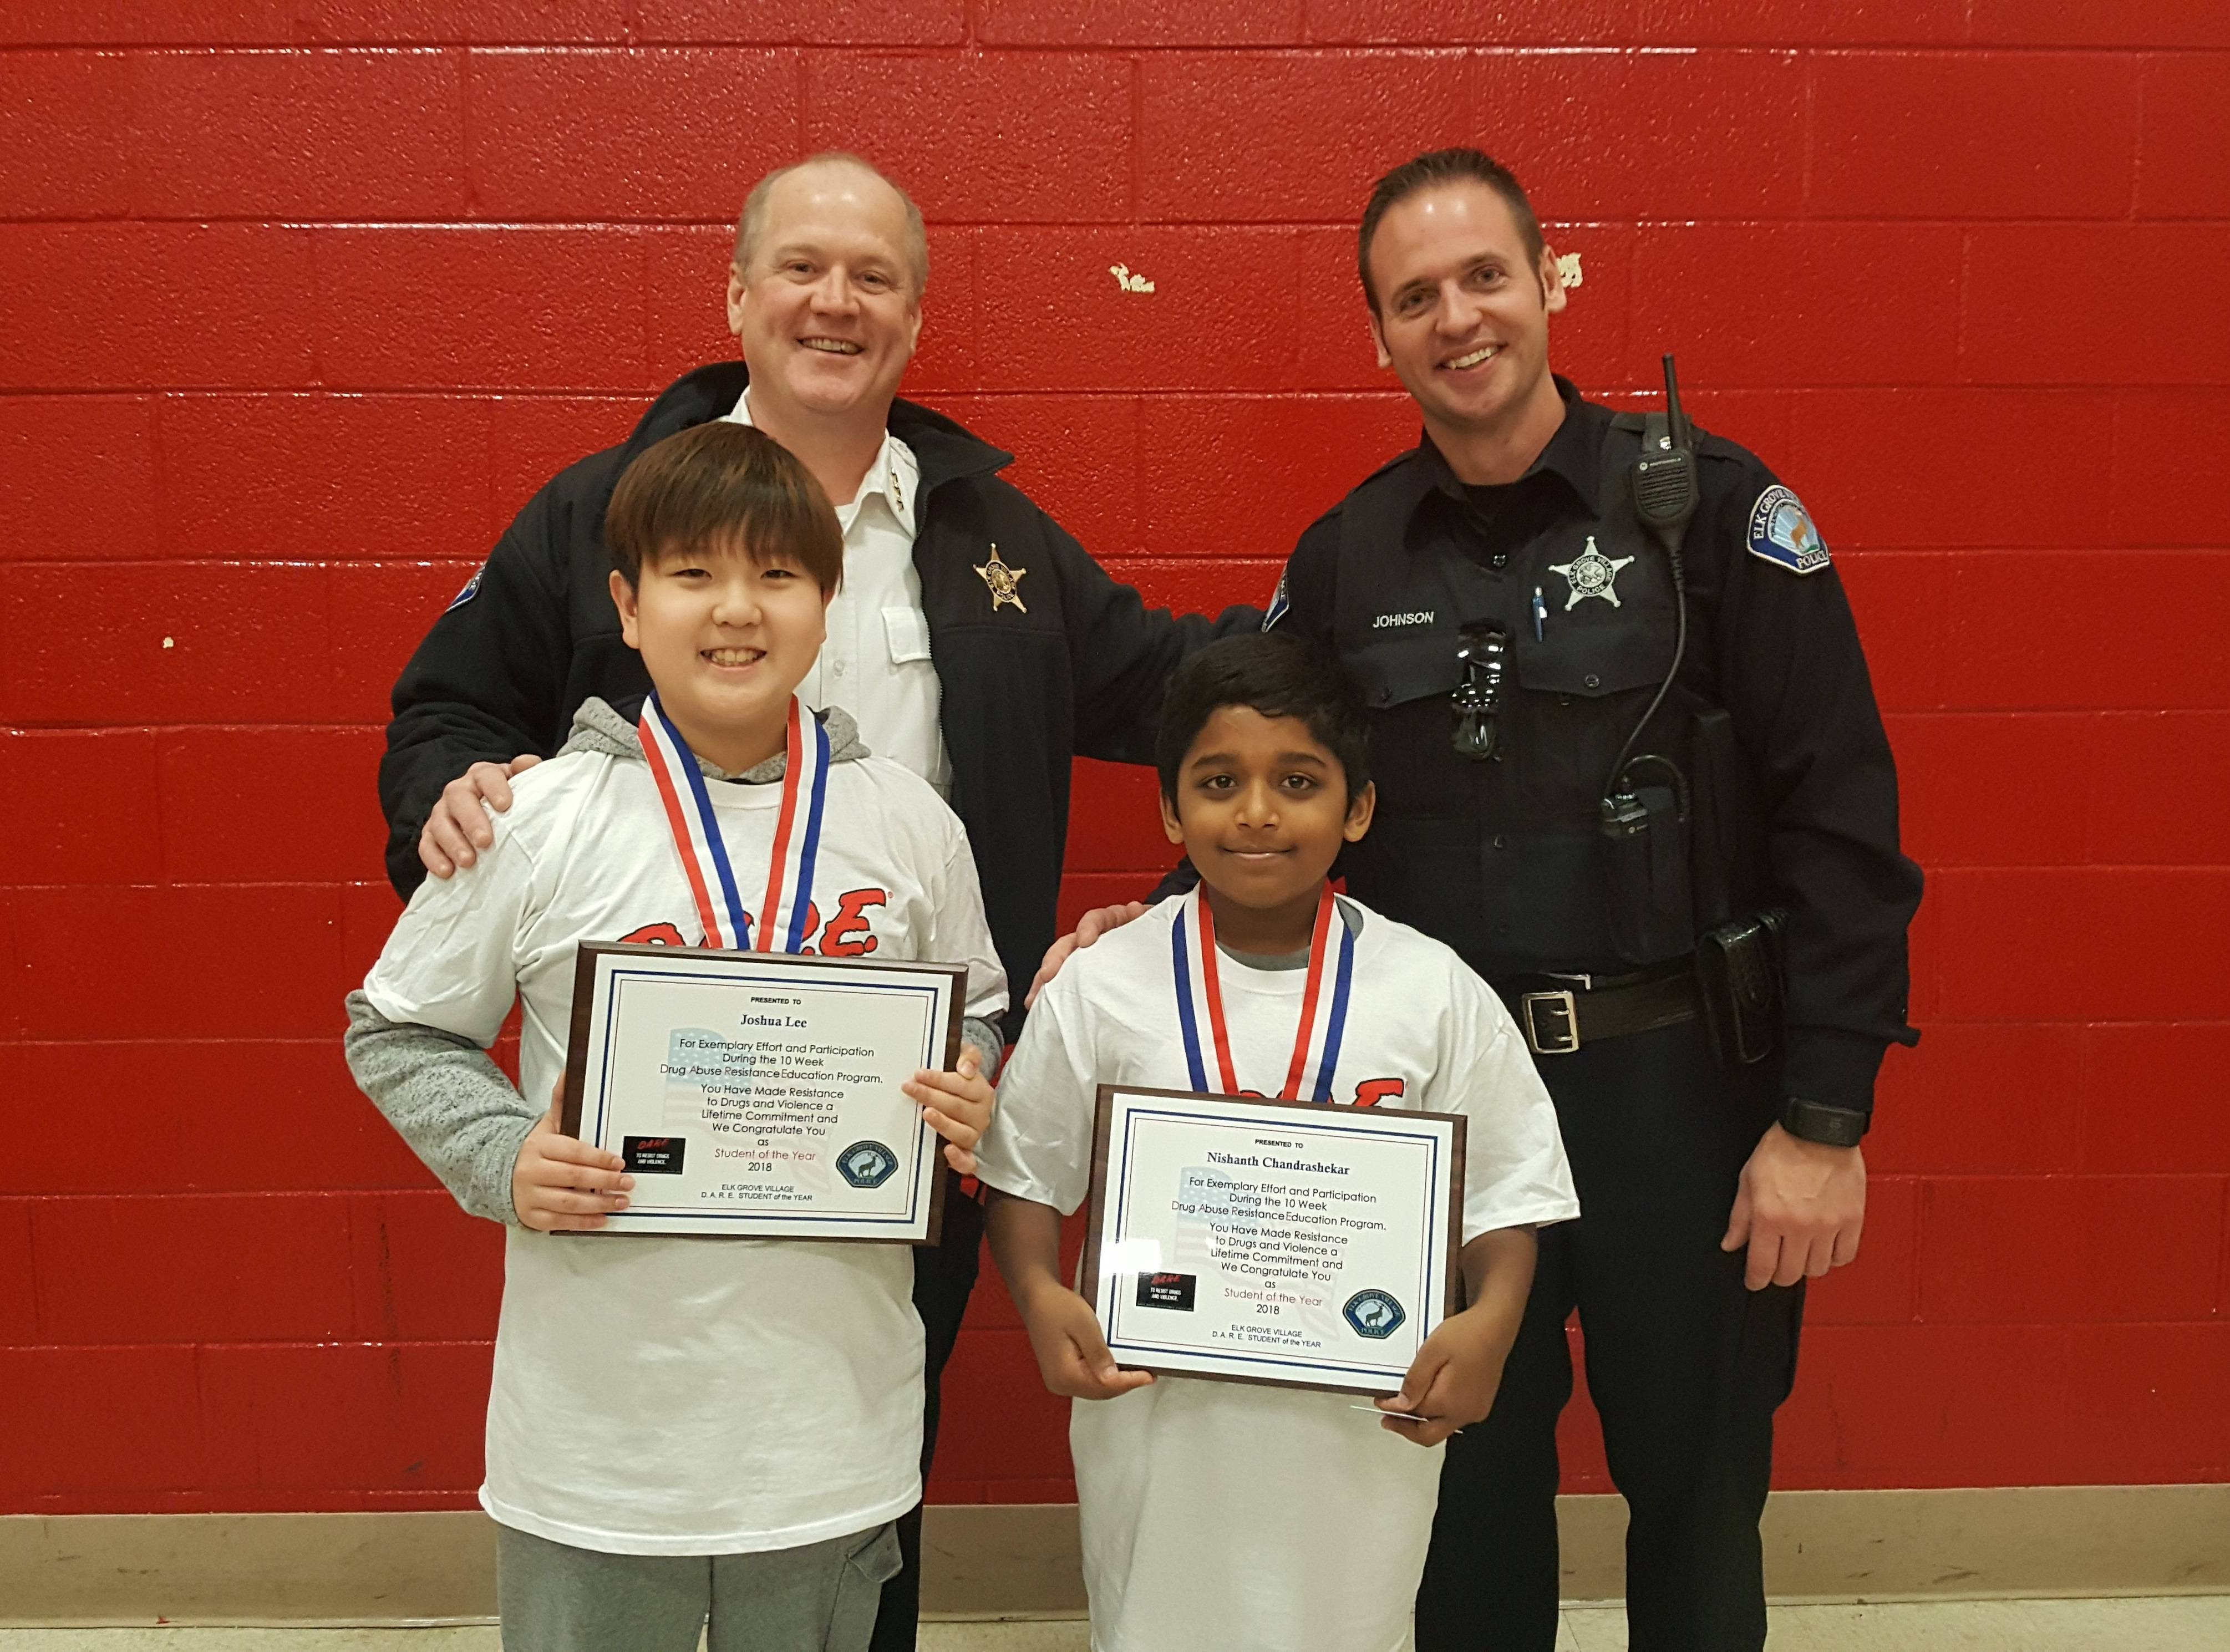 Elk Grove Village Police Chief Charles Walsh and Officer Johnson pictured with students from Link Elementary School.